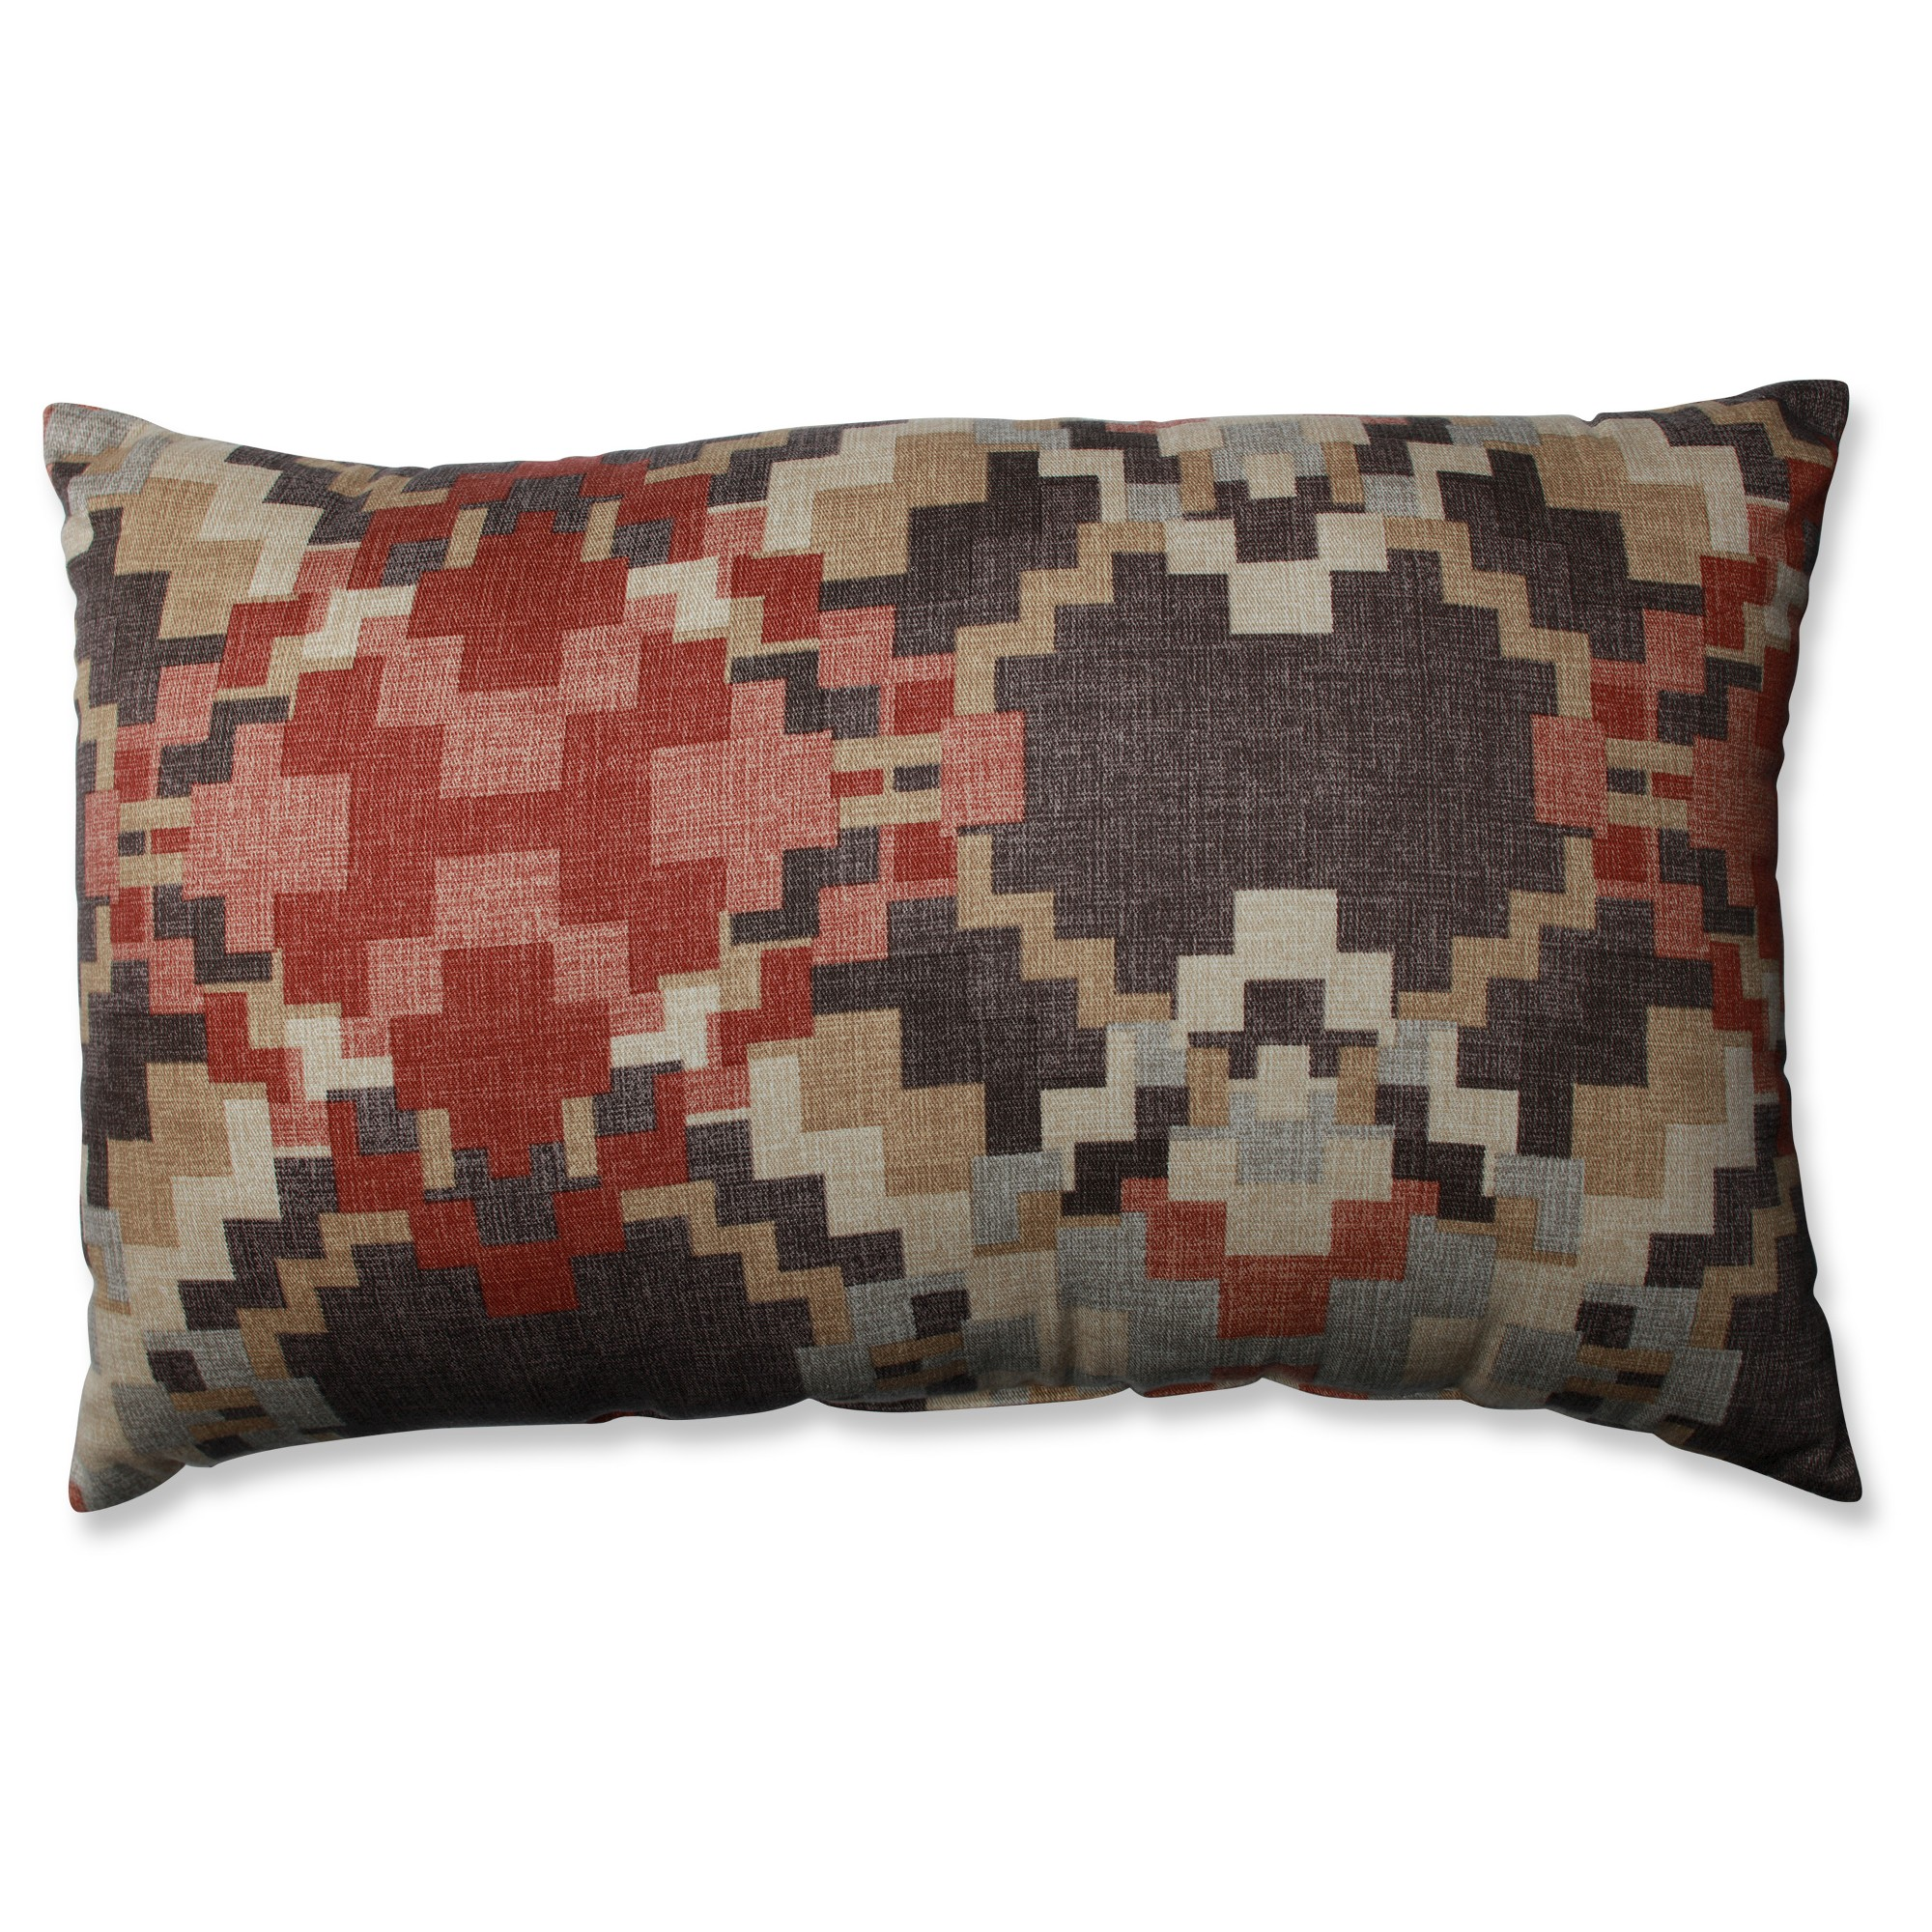 rose wayfair lumbar decor pillow brown pdx sager bungalow reviews pillows